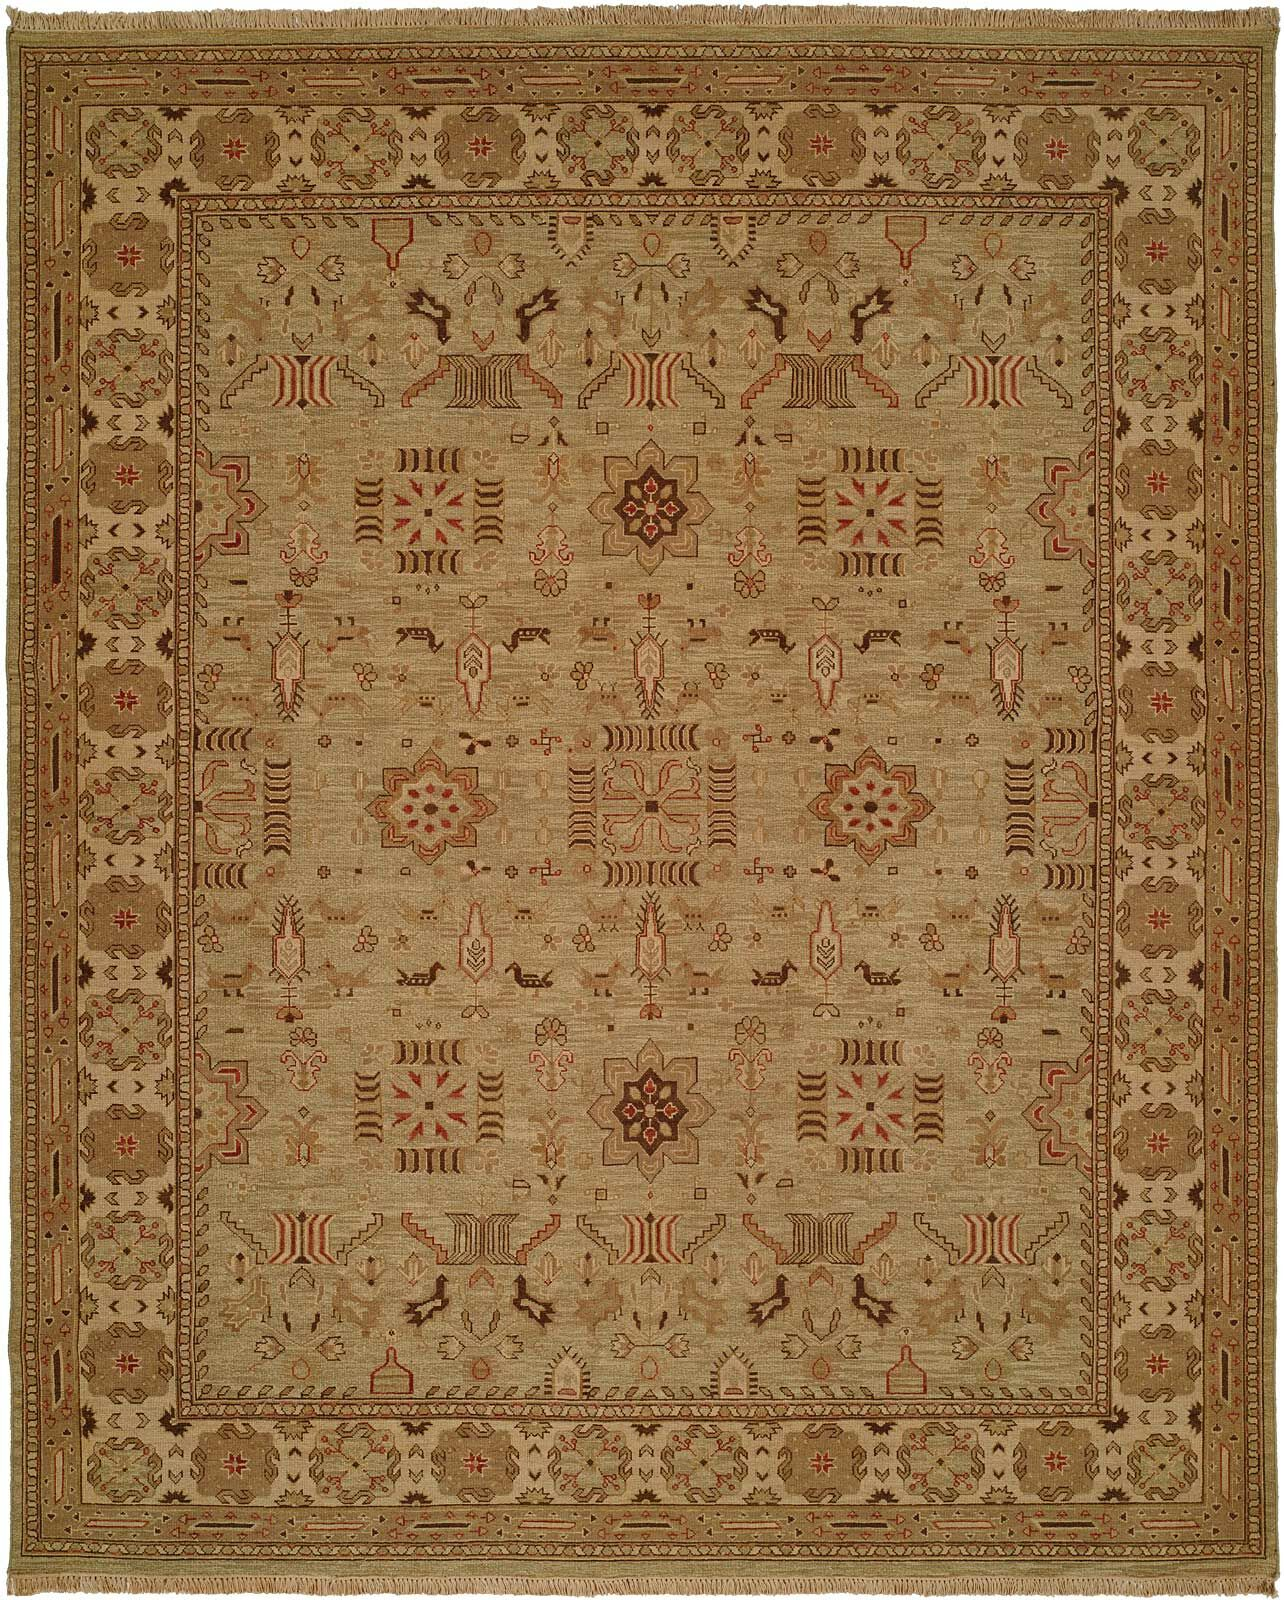 Agrawal Hand-Woven Beige Area Rug Rug Size: Round 6'